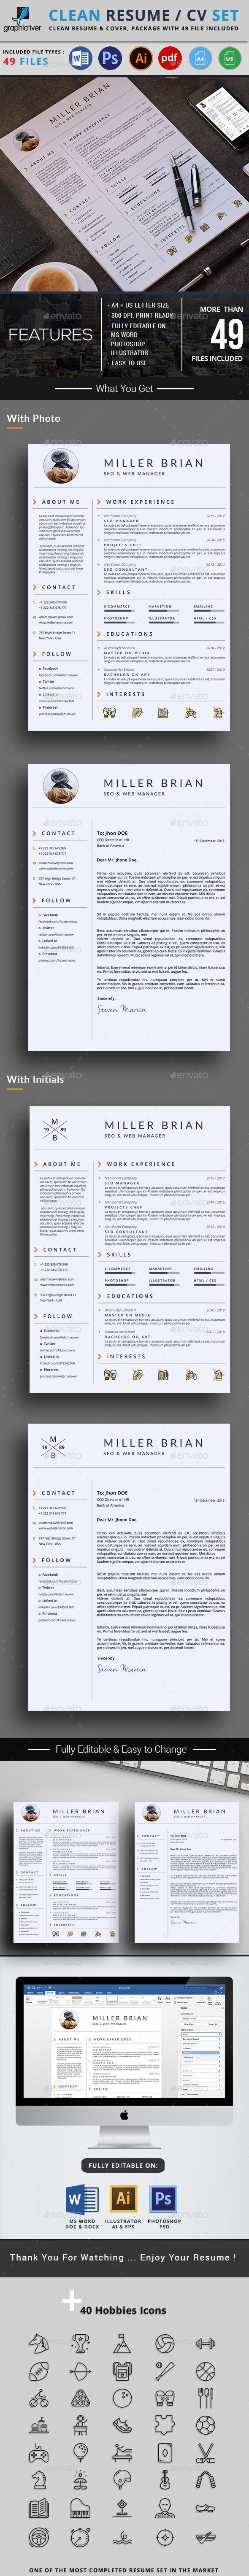 formats of business letters%0A Modern professional resume and cover letter templates in A  and US letter  formats  Flexible and